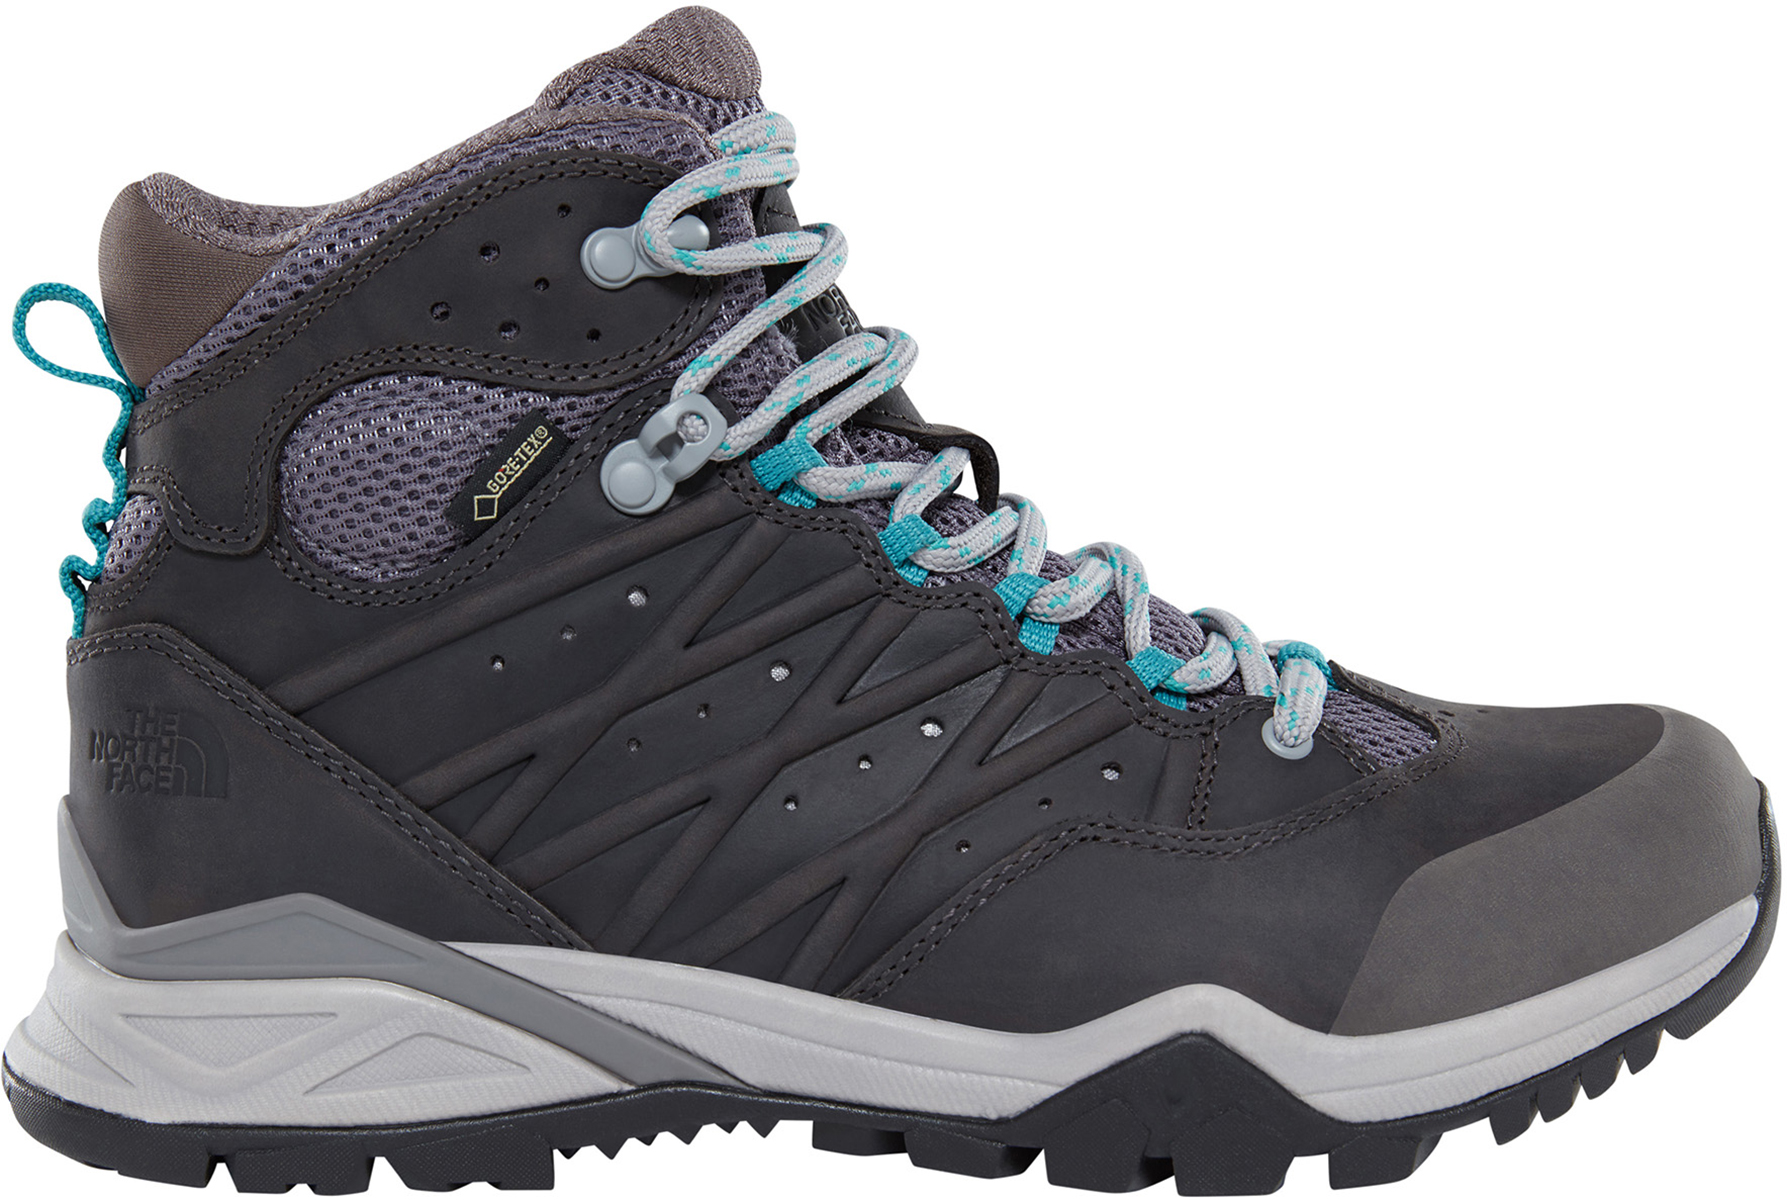 The North Face Women's Hedgehog Hike II Mid GTX Boots | Running shoes